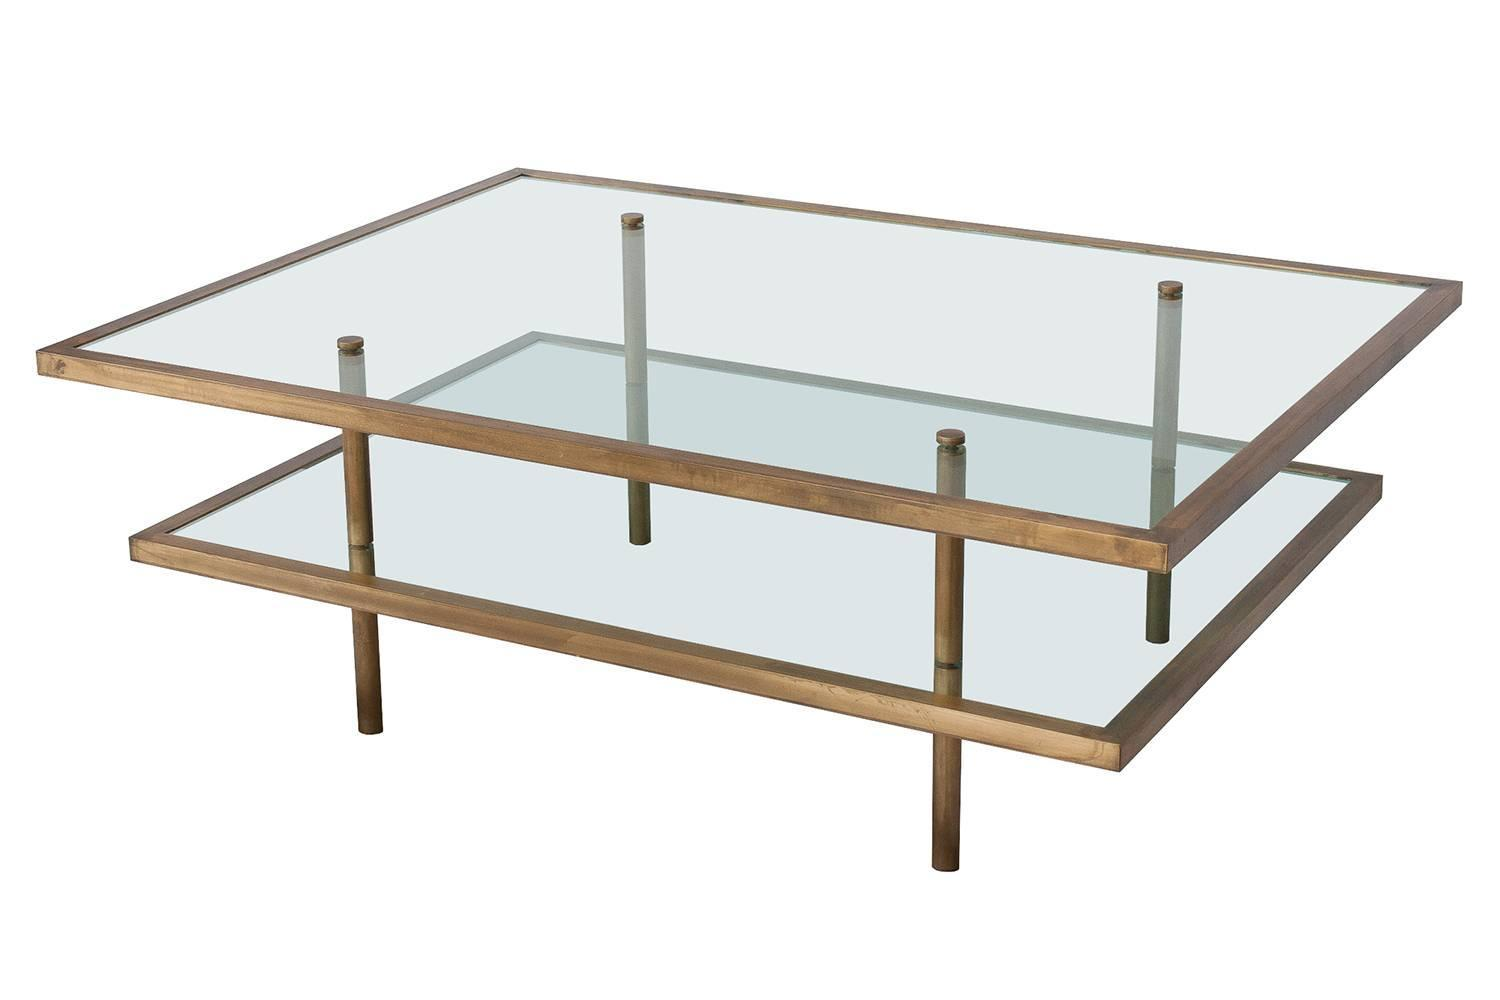 French Bronze and Glass Two-Tier Coffee Table at 1stdibs